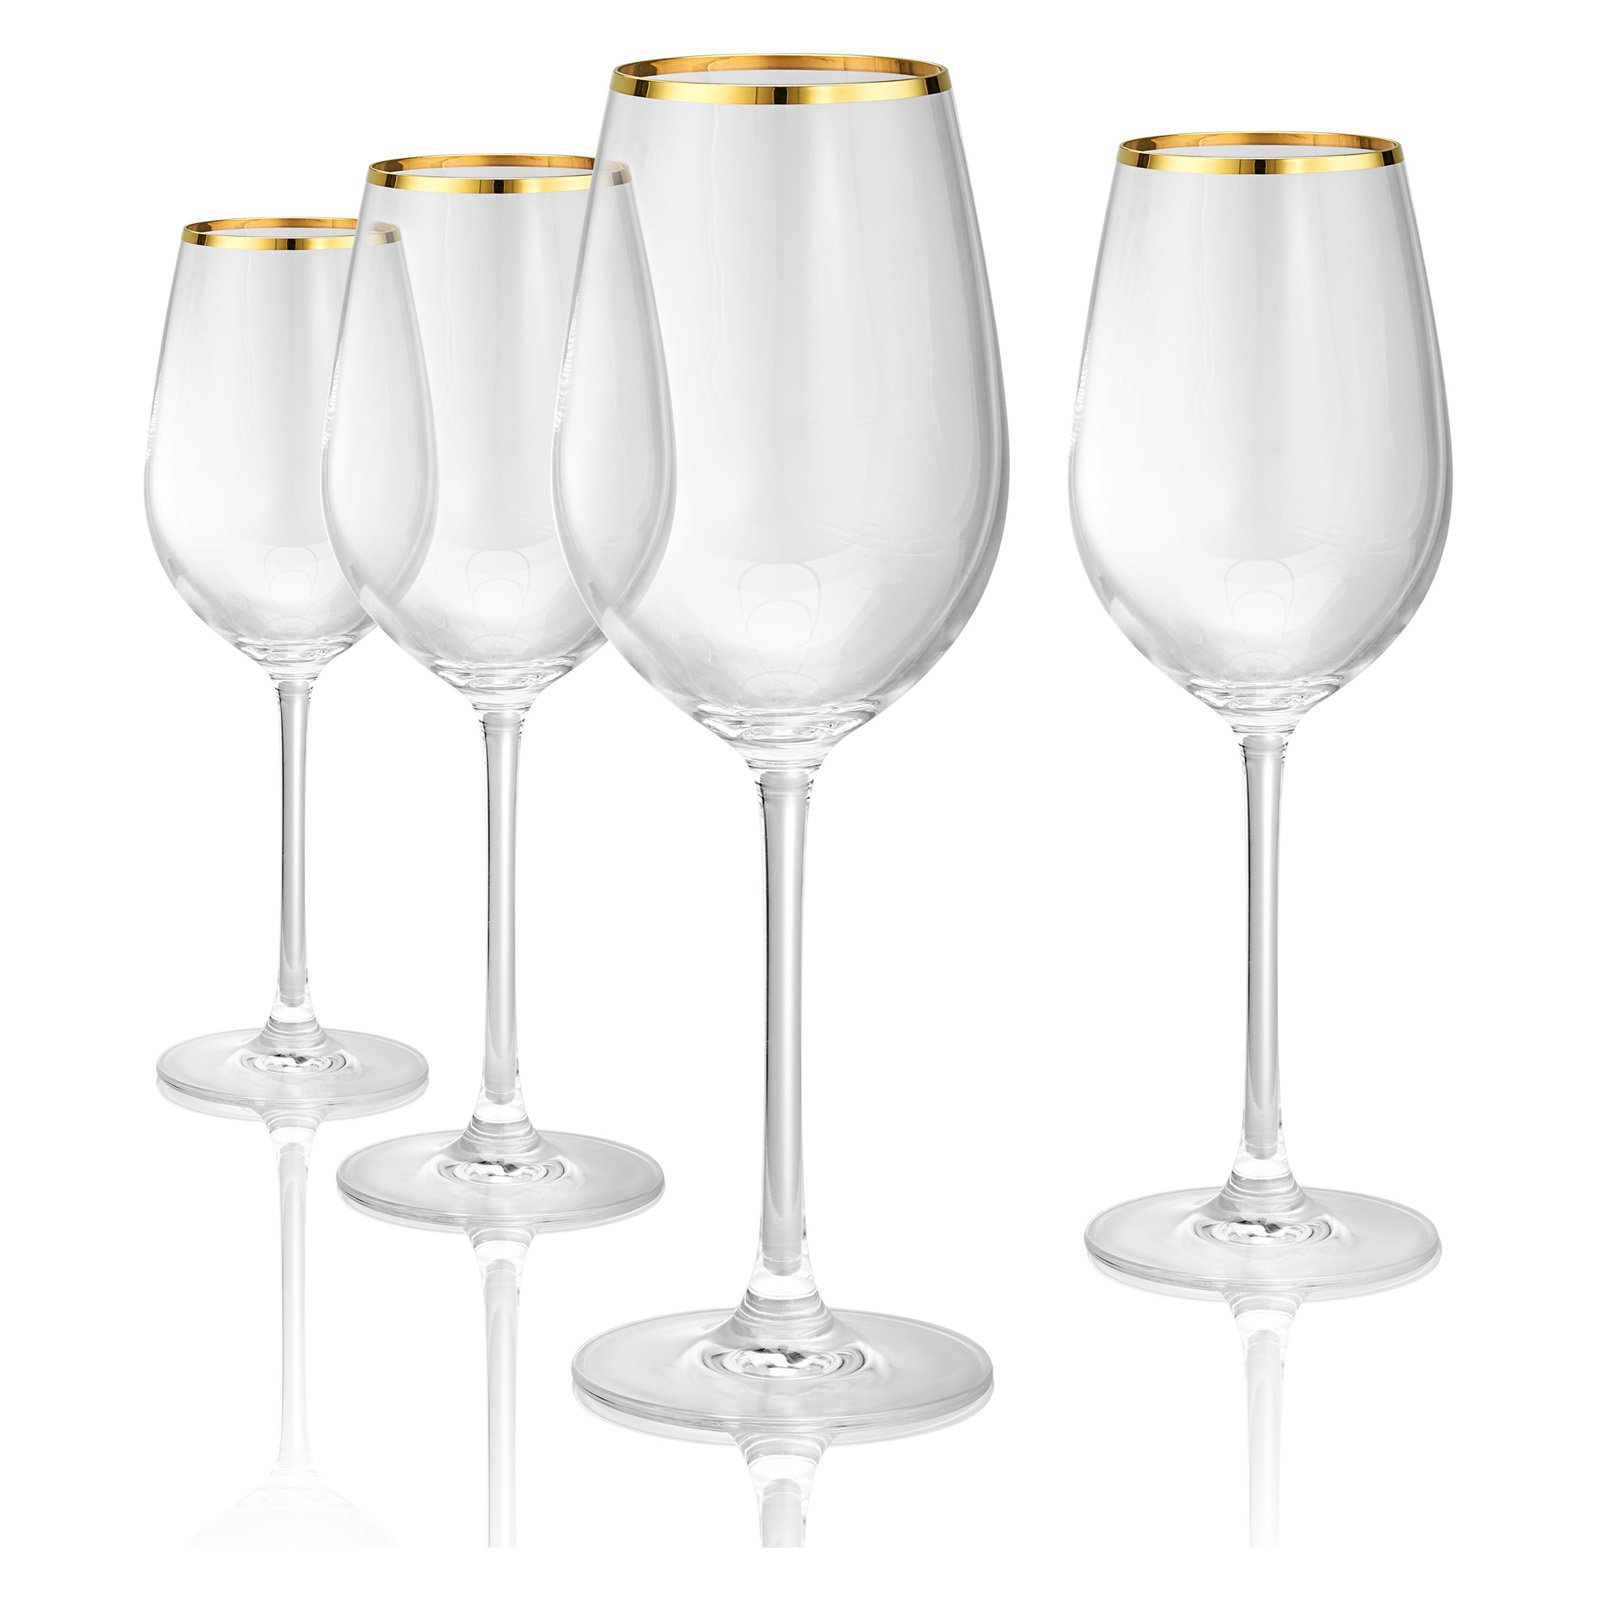 Artland Gold Band Red Wine Glasses - Set of 4